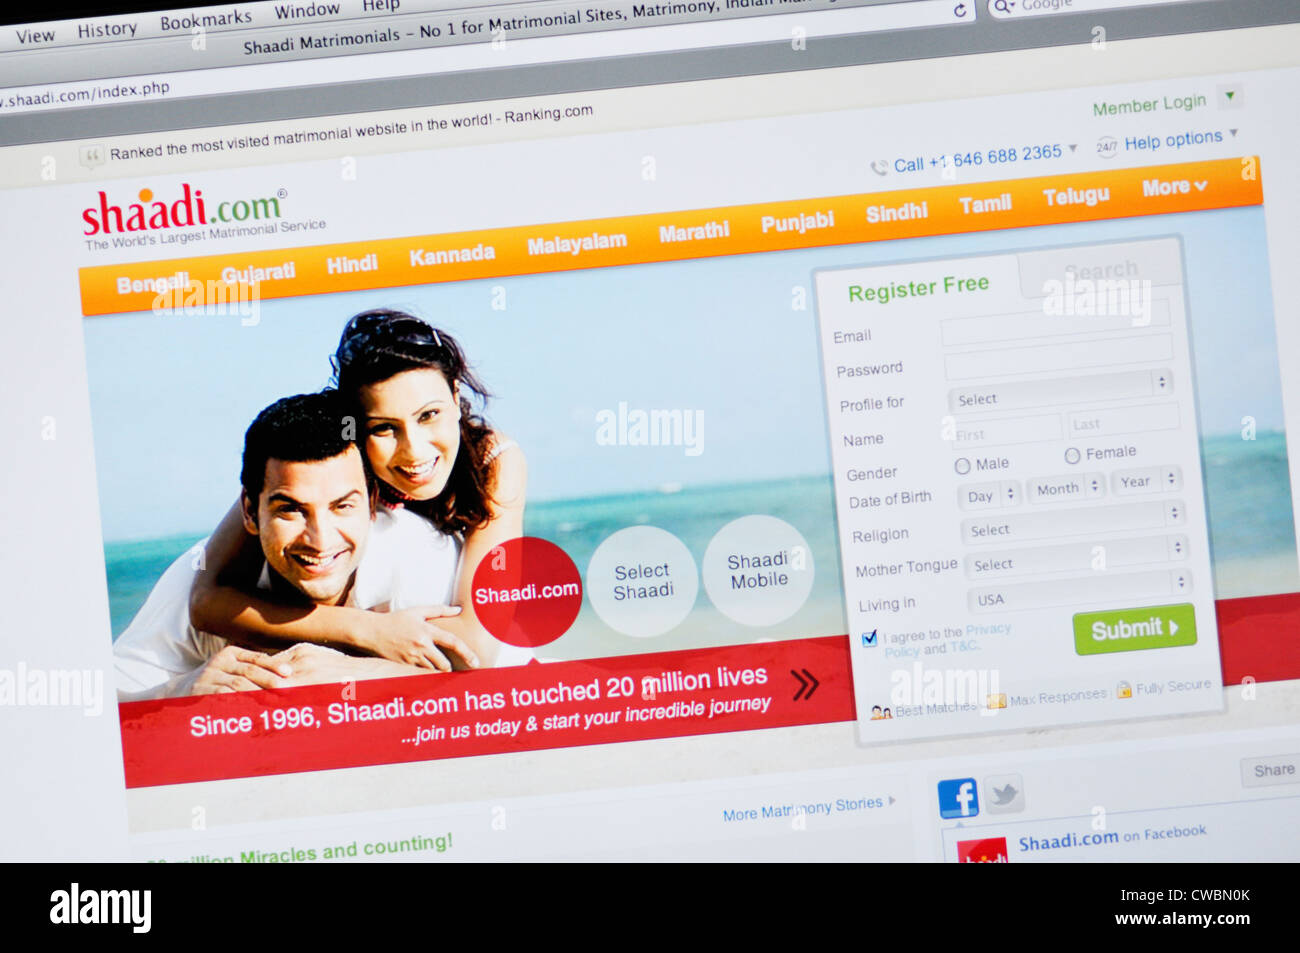 shaadi dating uk Shaadi features shaadicom uk runs a wide number of different features and services for singles to use there is a shaadi spotlight which will increase your number of profile views a reguar blog is available as well, so that one can read in order to keep in the loop.